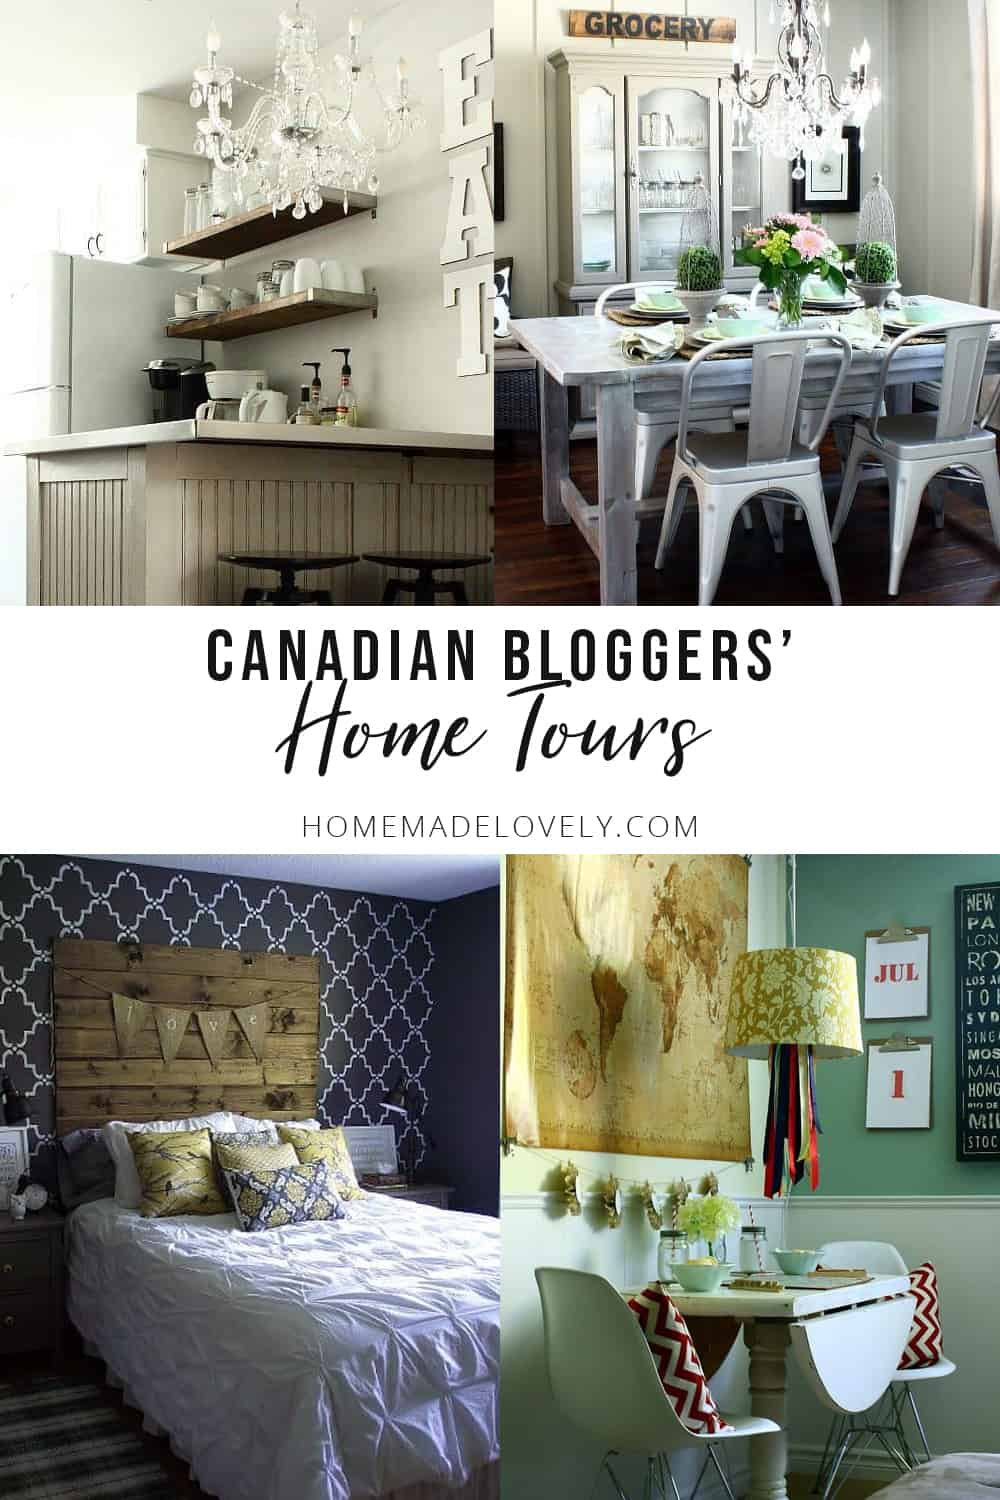 Canadian Bloggers Home Tour and Our House Tour